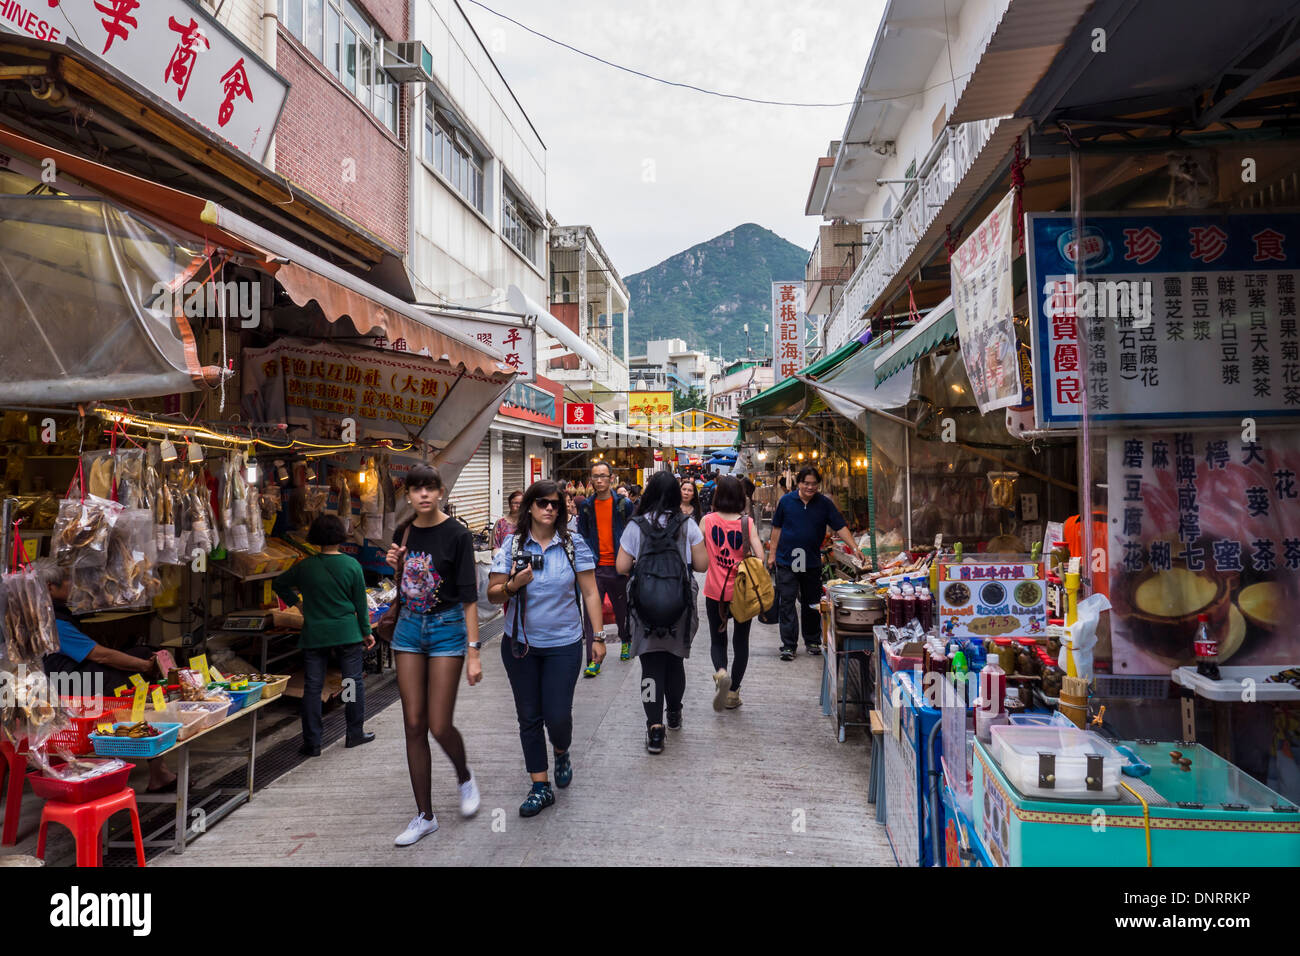 Street Lined with Foot Stalls and Restaurants in the Tai O Fishing village,  Lantau Island, Hong Kong, China - Stock Image